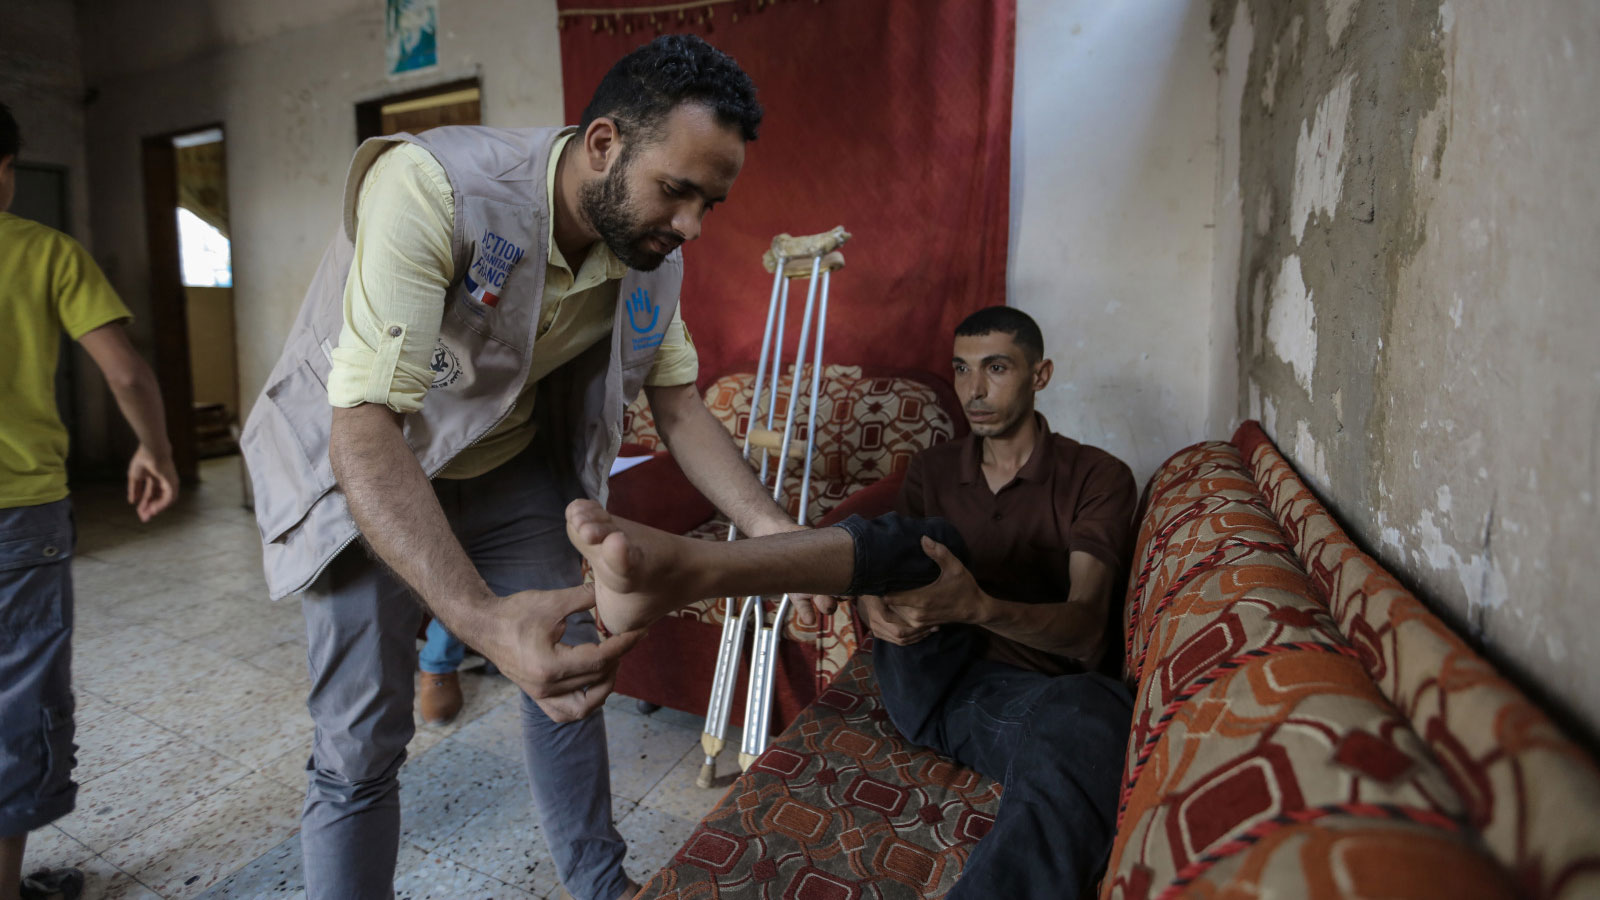 Gaza emergency | Gaining strength through rehabilitation